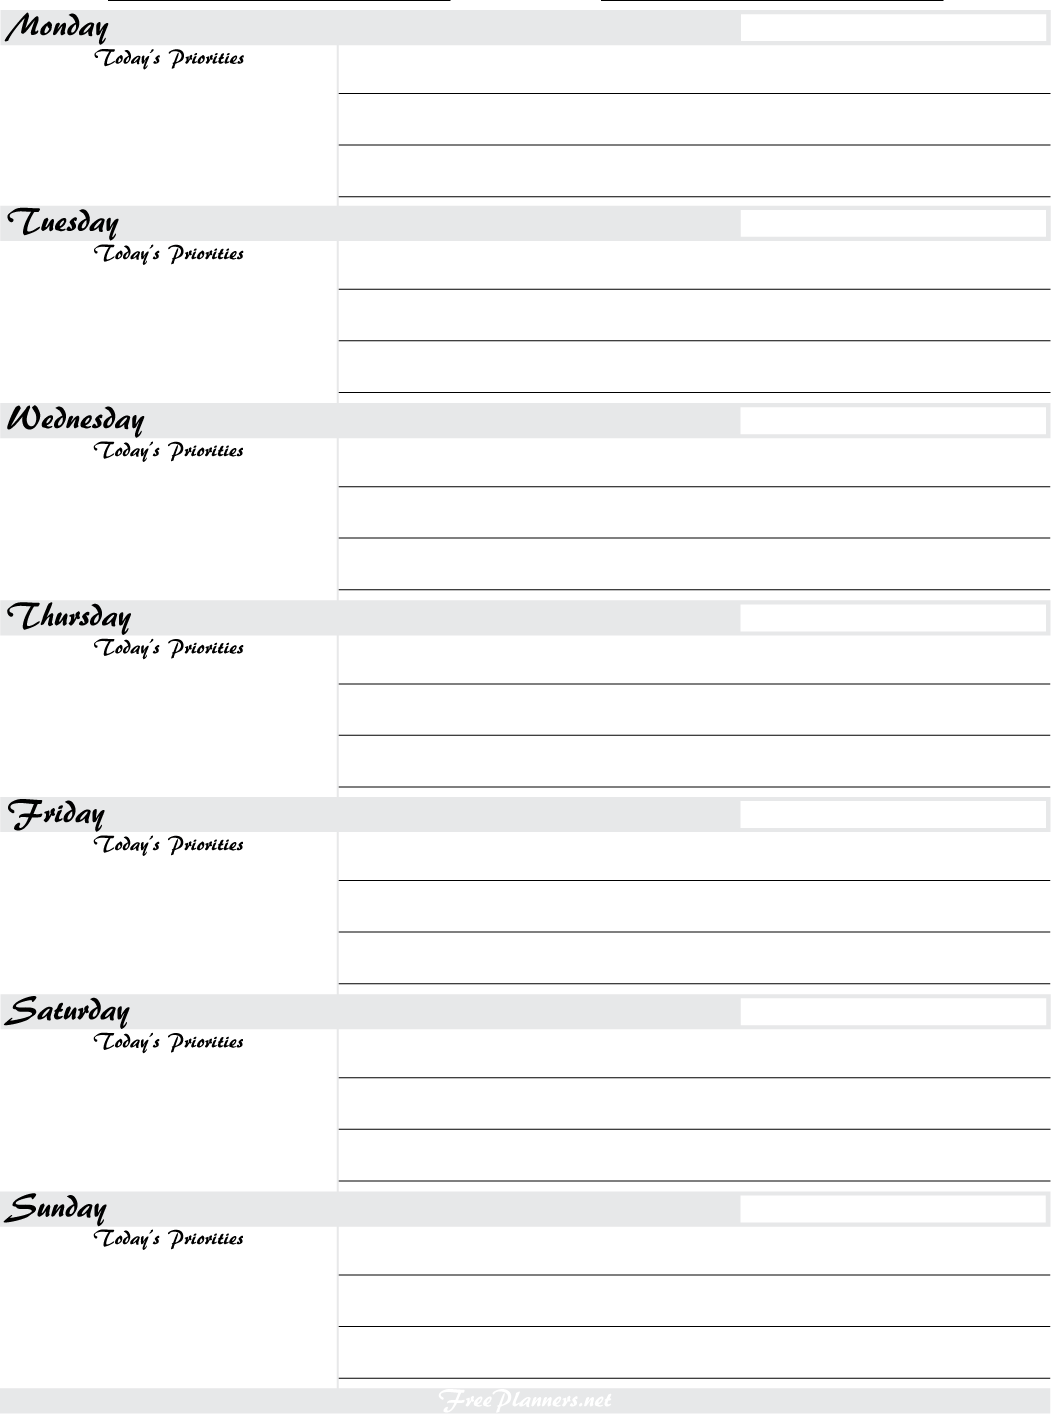 7 Images of Free Printable Planners